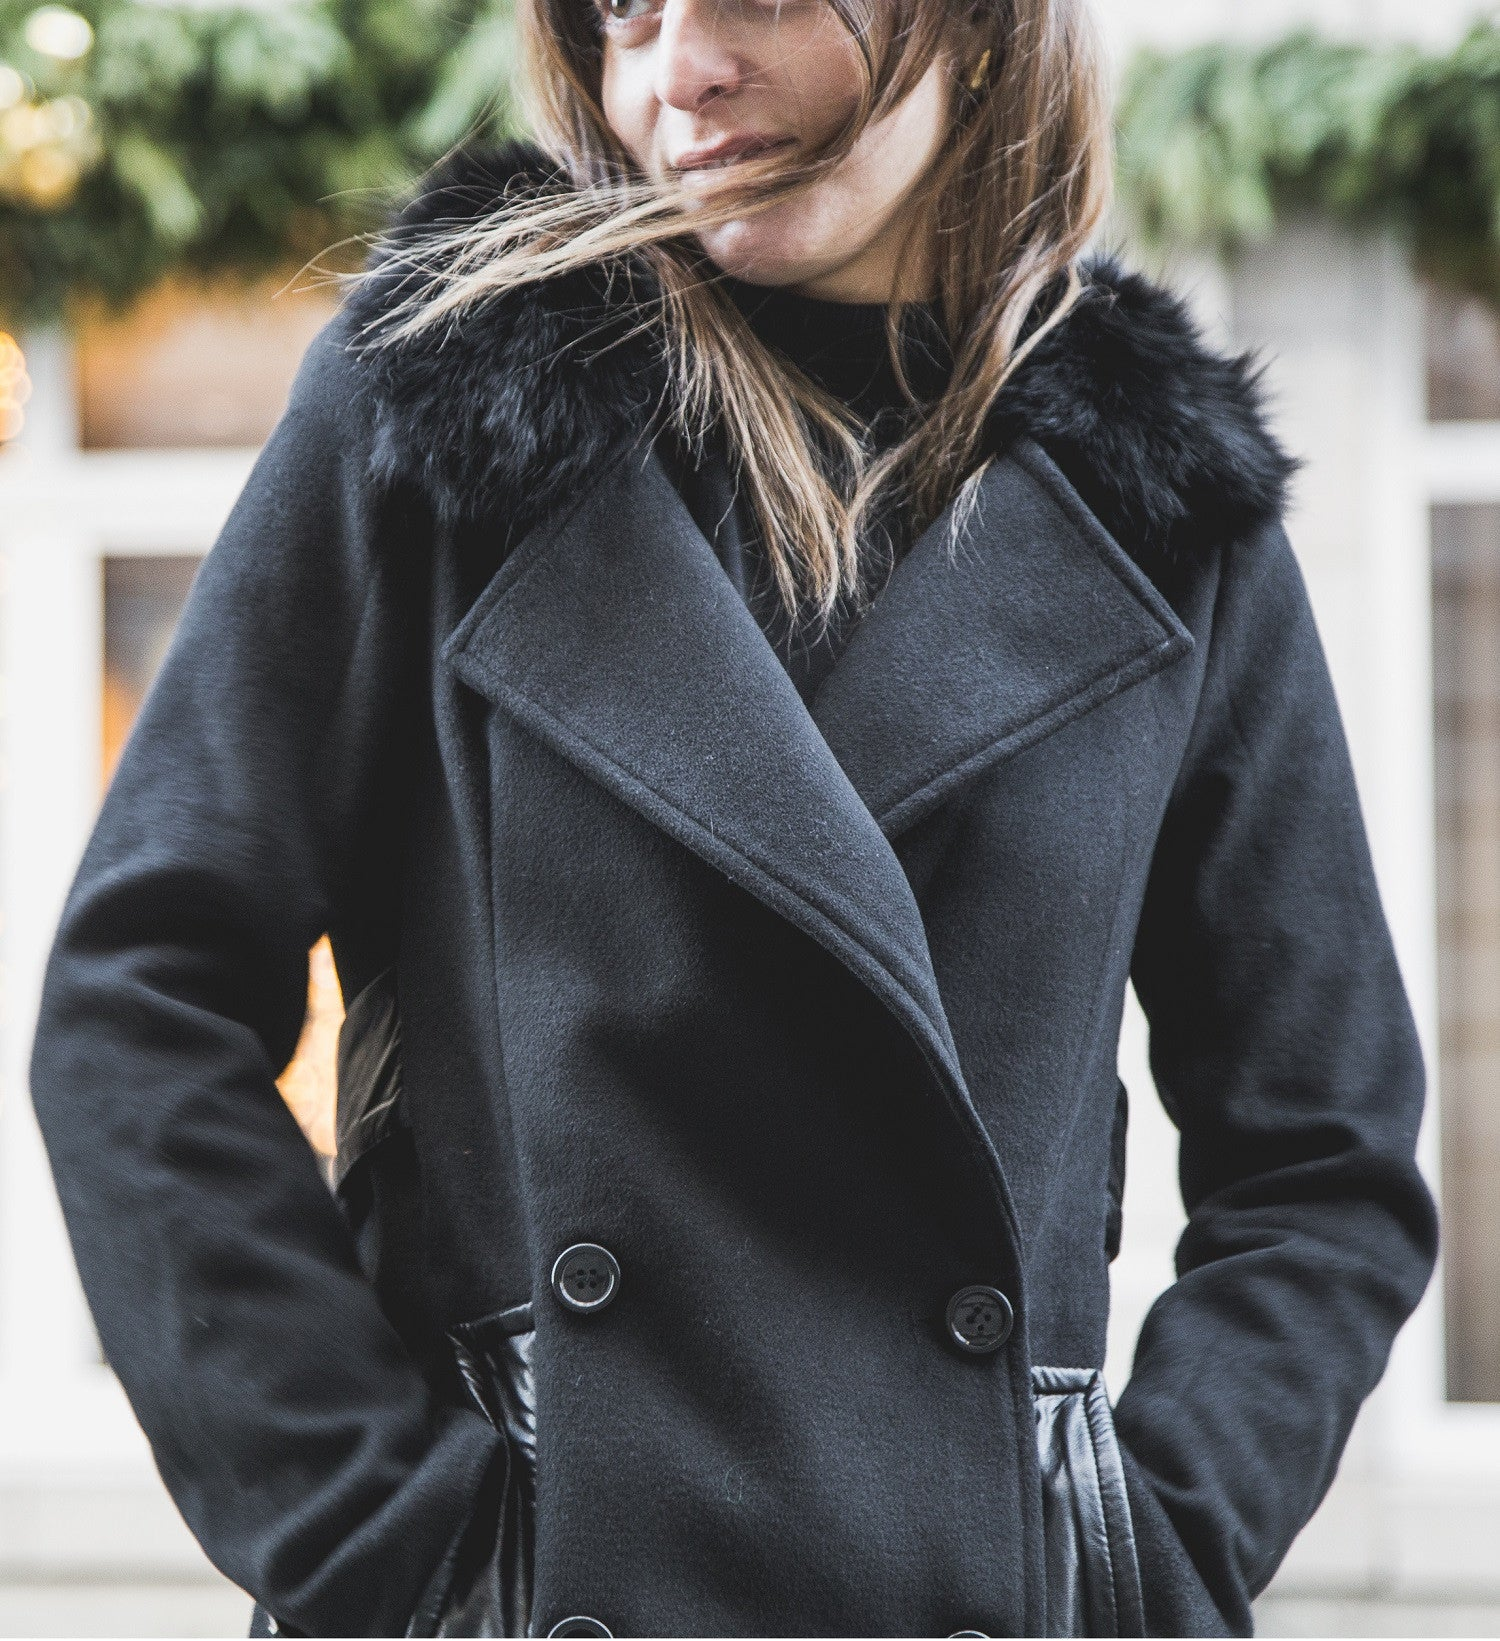 BARBARA Black Faux Wool Coat with Faux Fur Collar - Mademoiselle Veste - 2